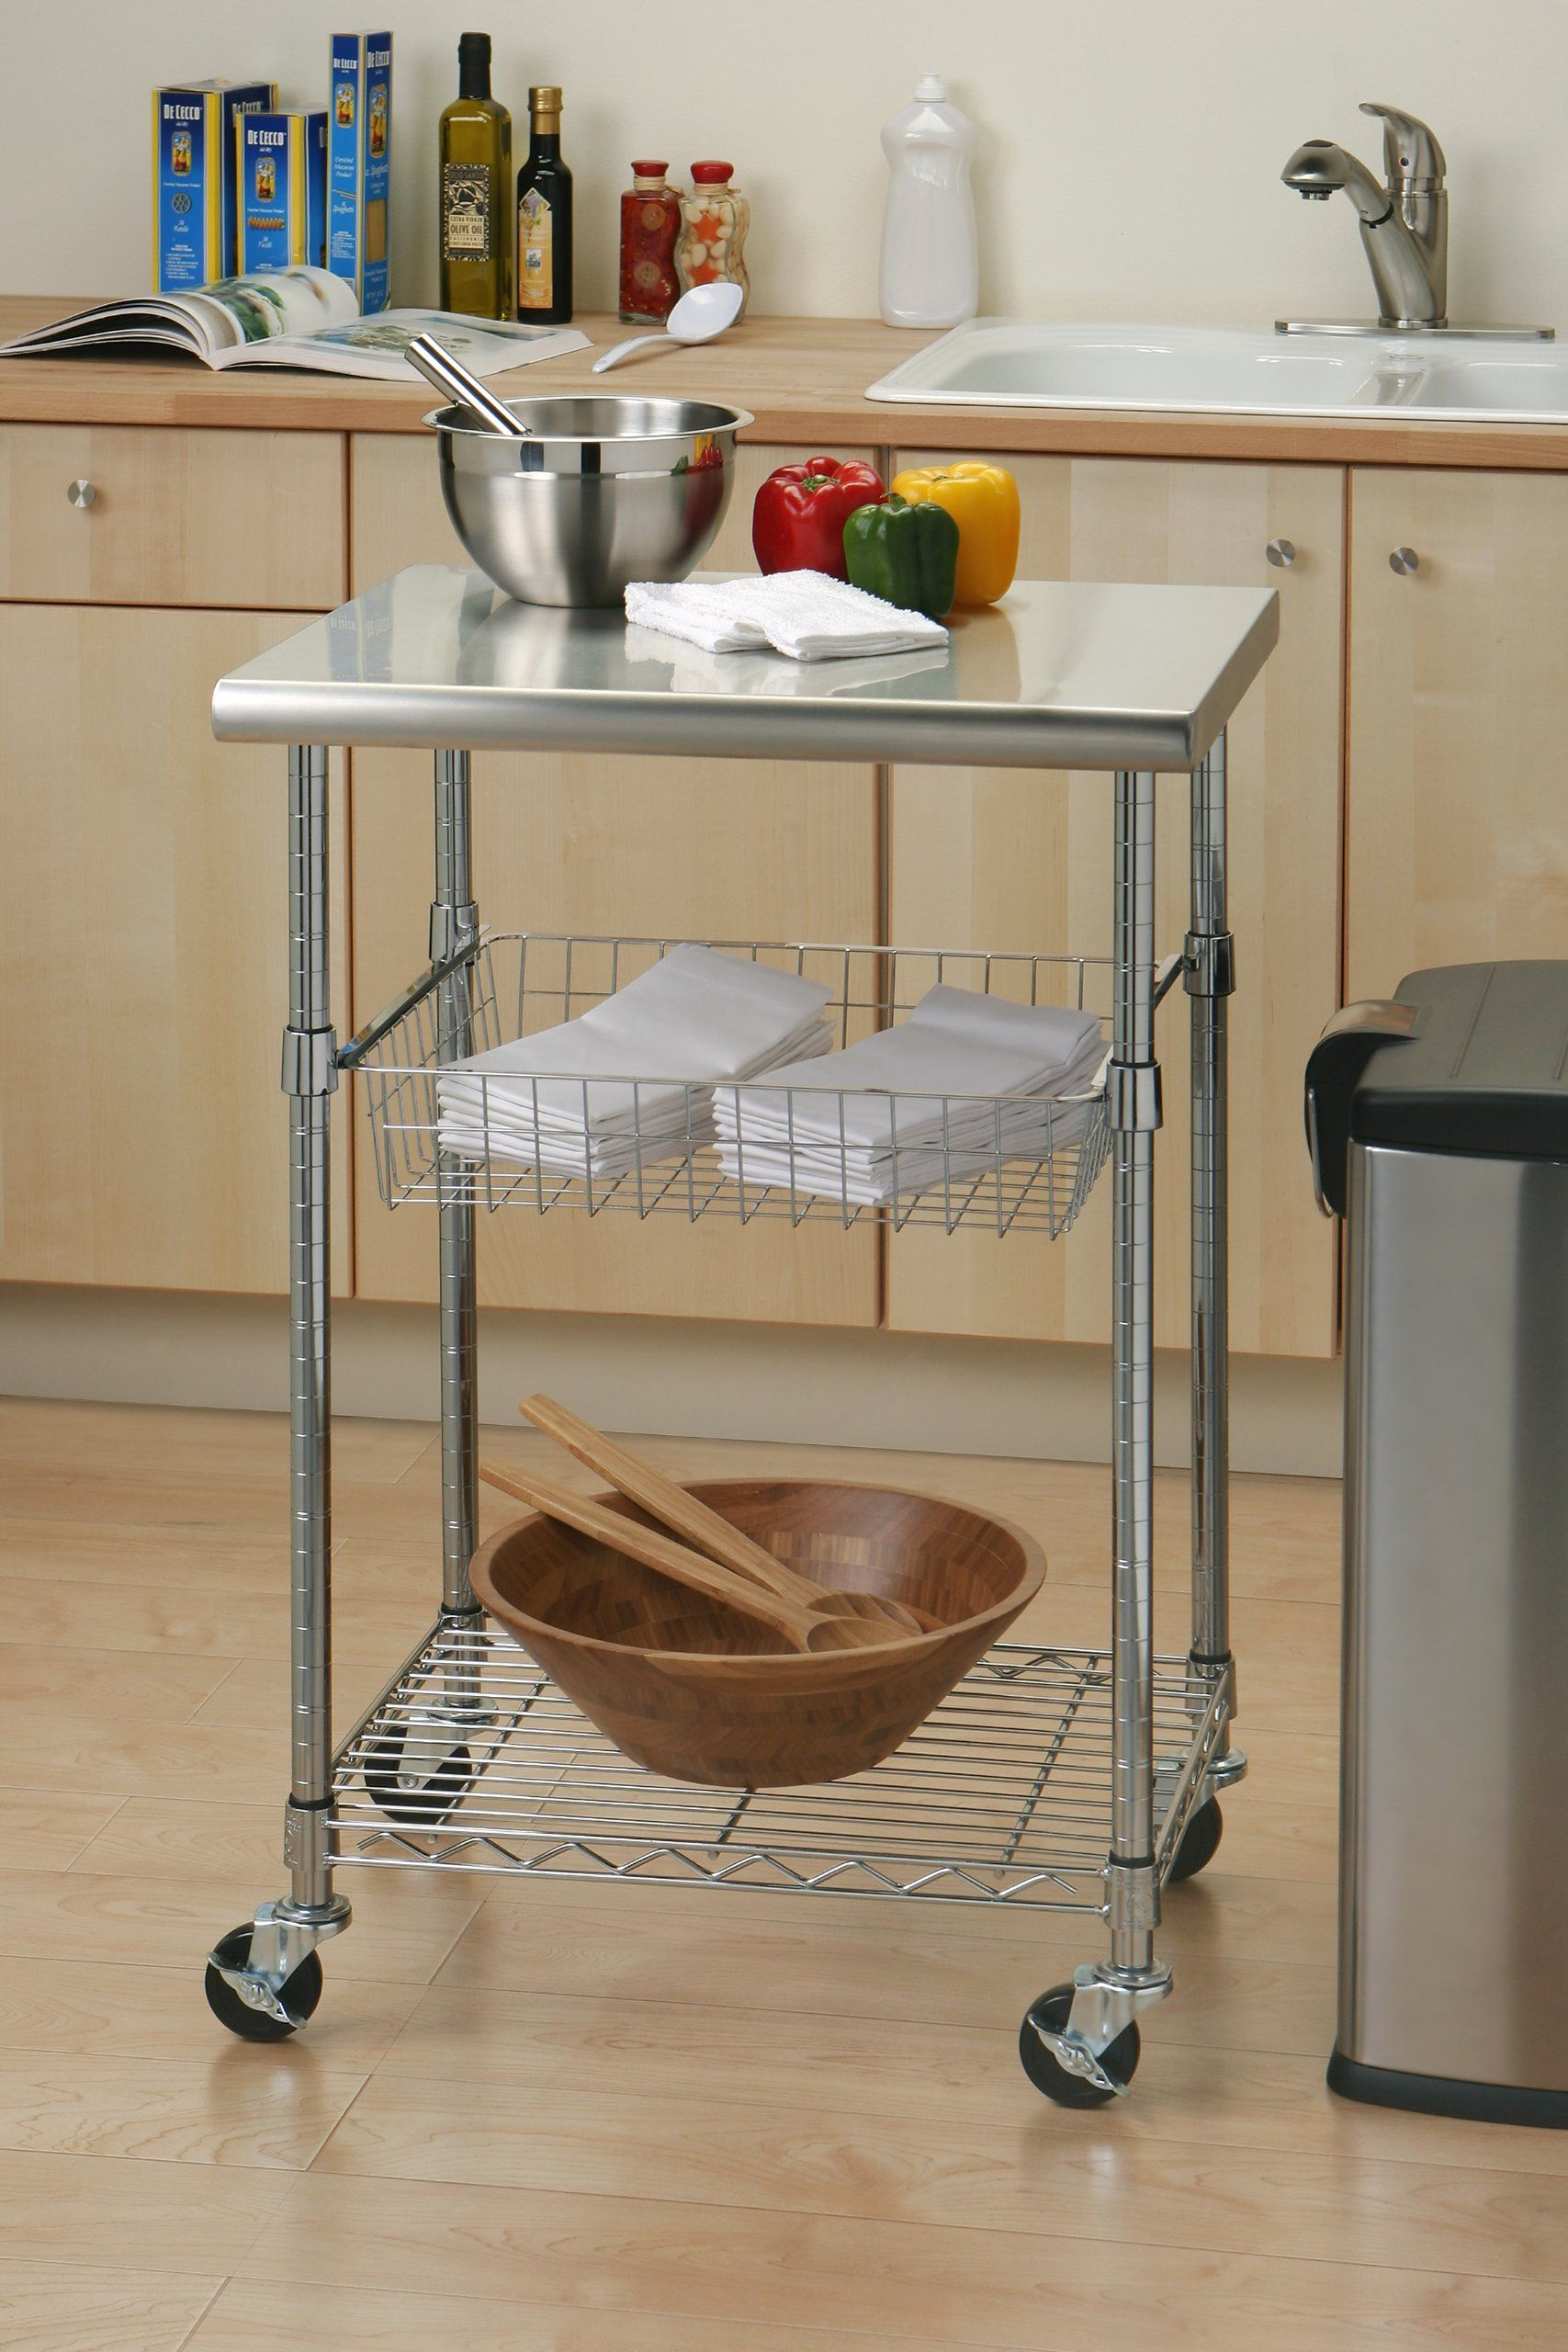 Kitchen Utility Cart Modern Kitchen Furniture Stainless Steel Kitchen Table Kitchen Work Tables